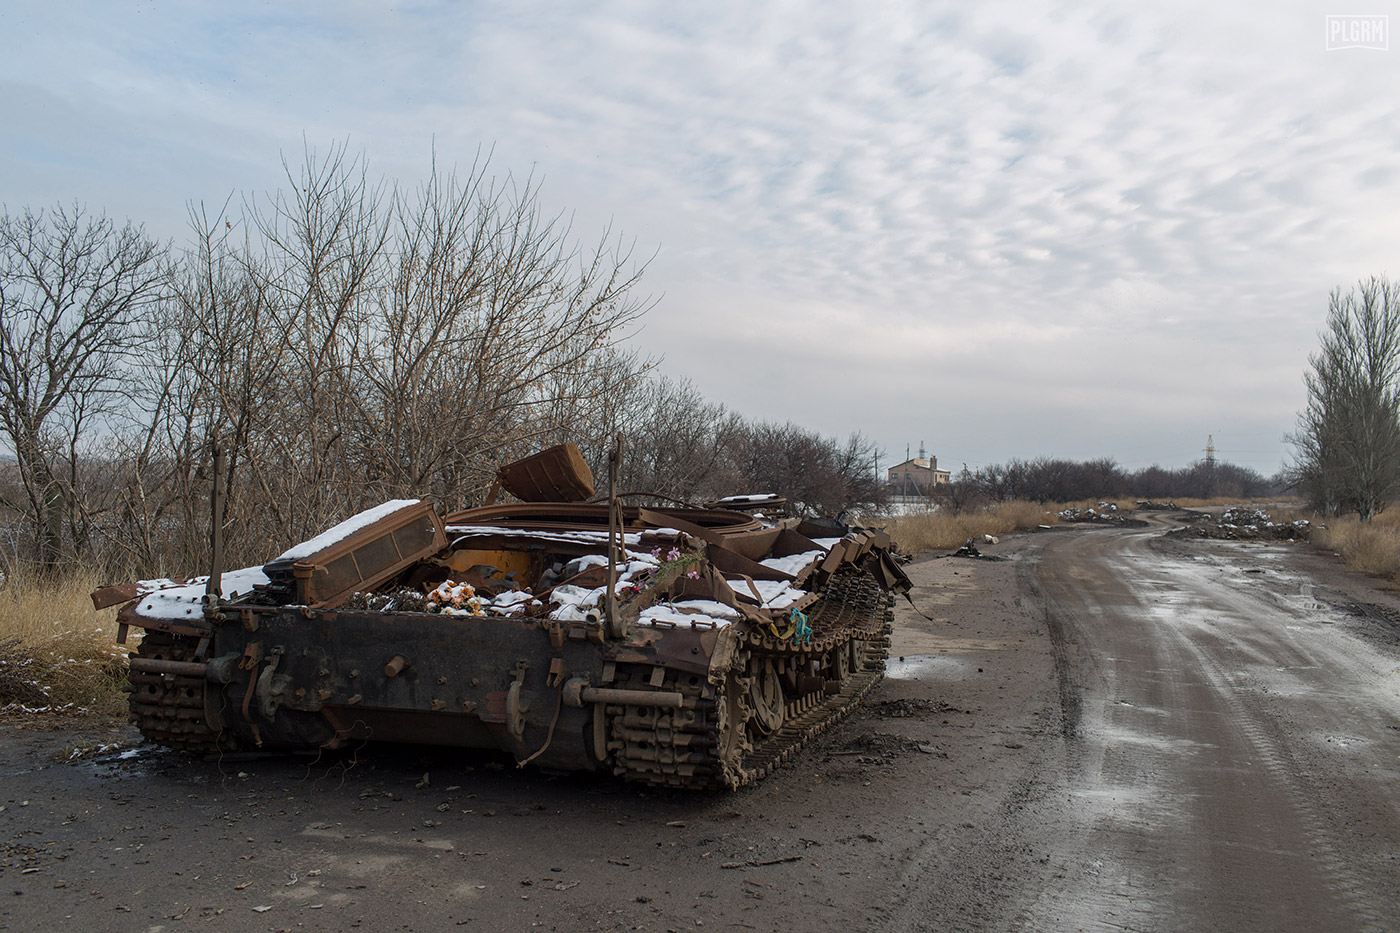 This Ukrainian tank was destroyed in an ambush during the height of the war, and is a somber reminder of the environment you're entering. All onboard died.